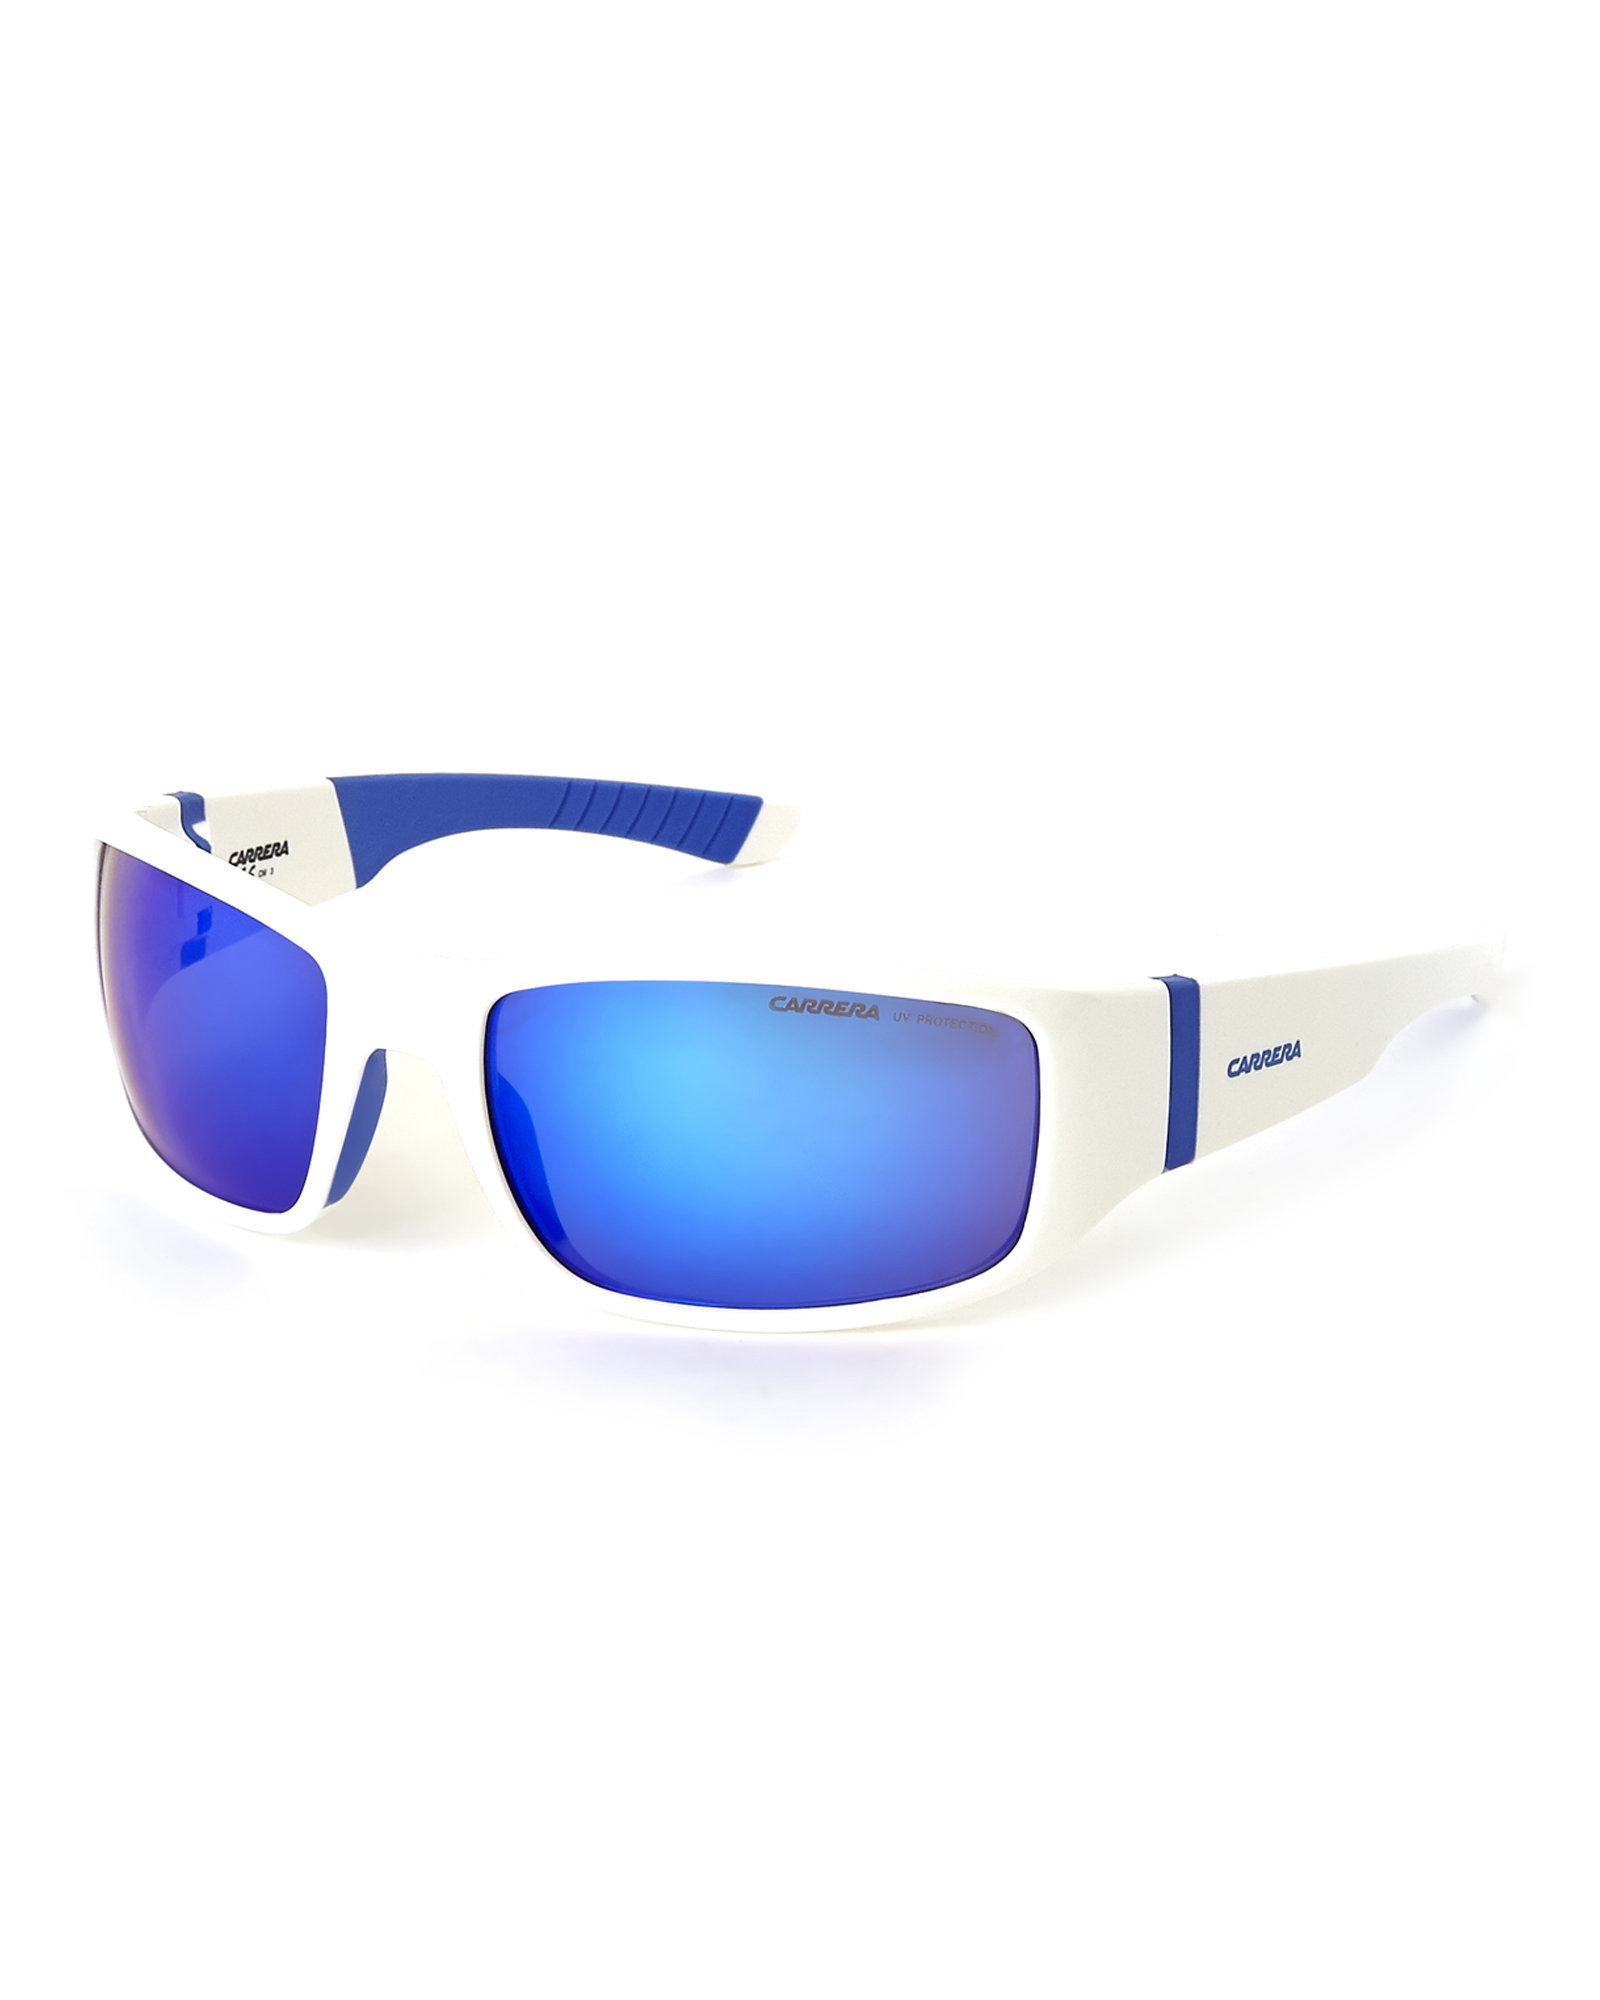 2a2f2d61c8a Lyst - Carrera White 4000 S Wrap Sunglasses in White